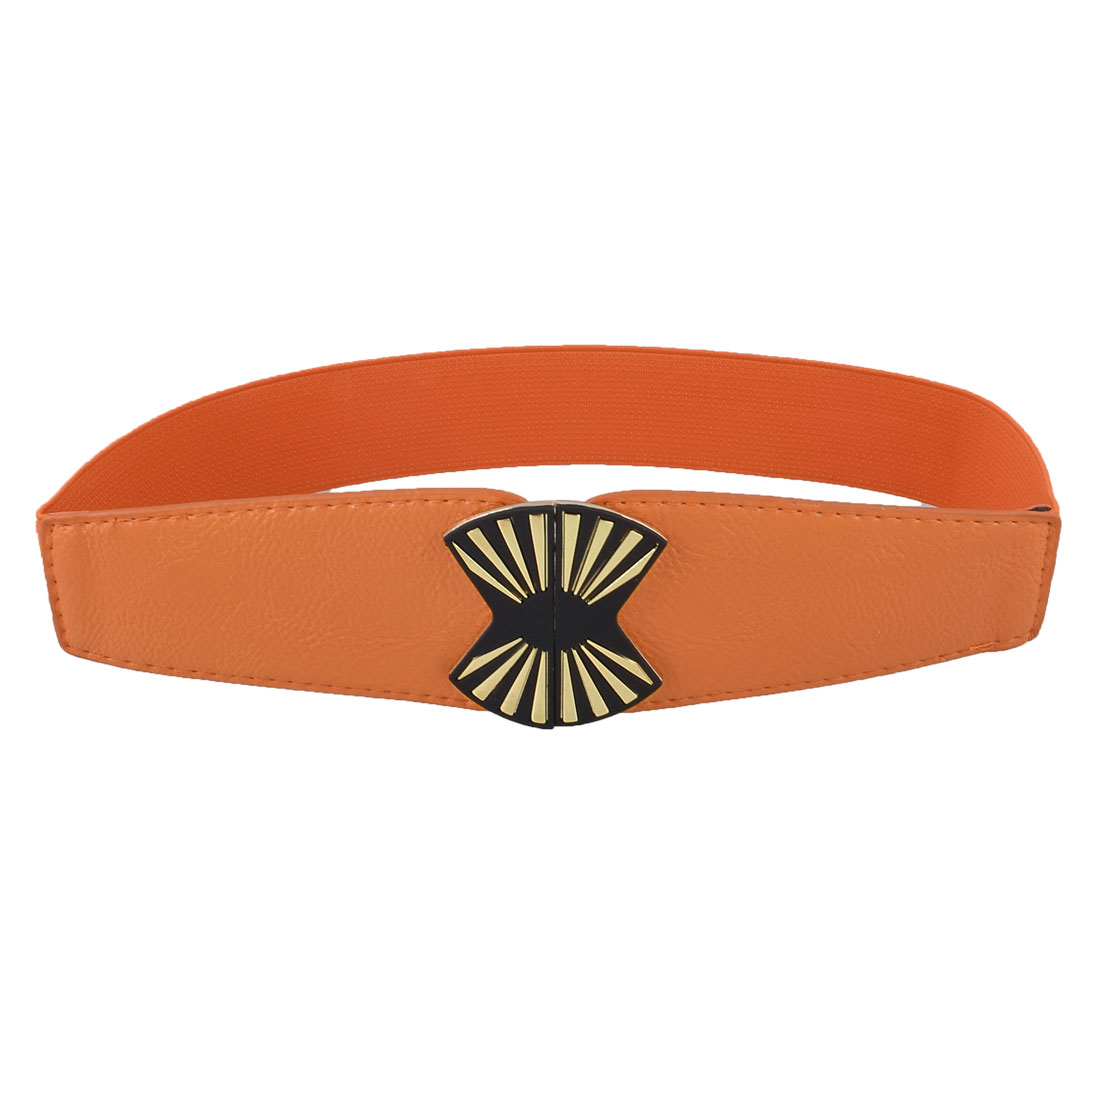 "Orange Metal Interlocking Buckle 1.5"" Width Elastic Waistband Belt for Ladies"